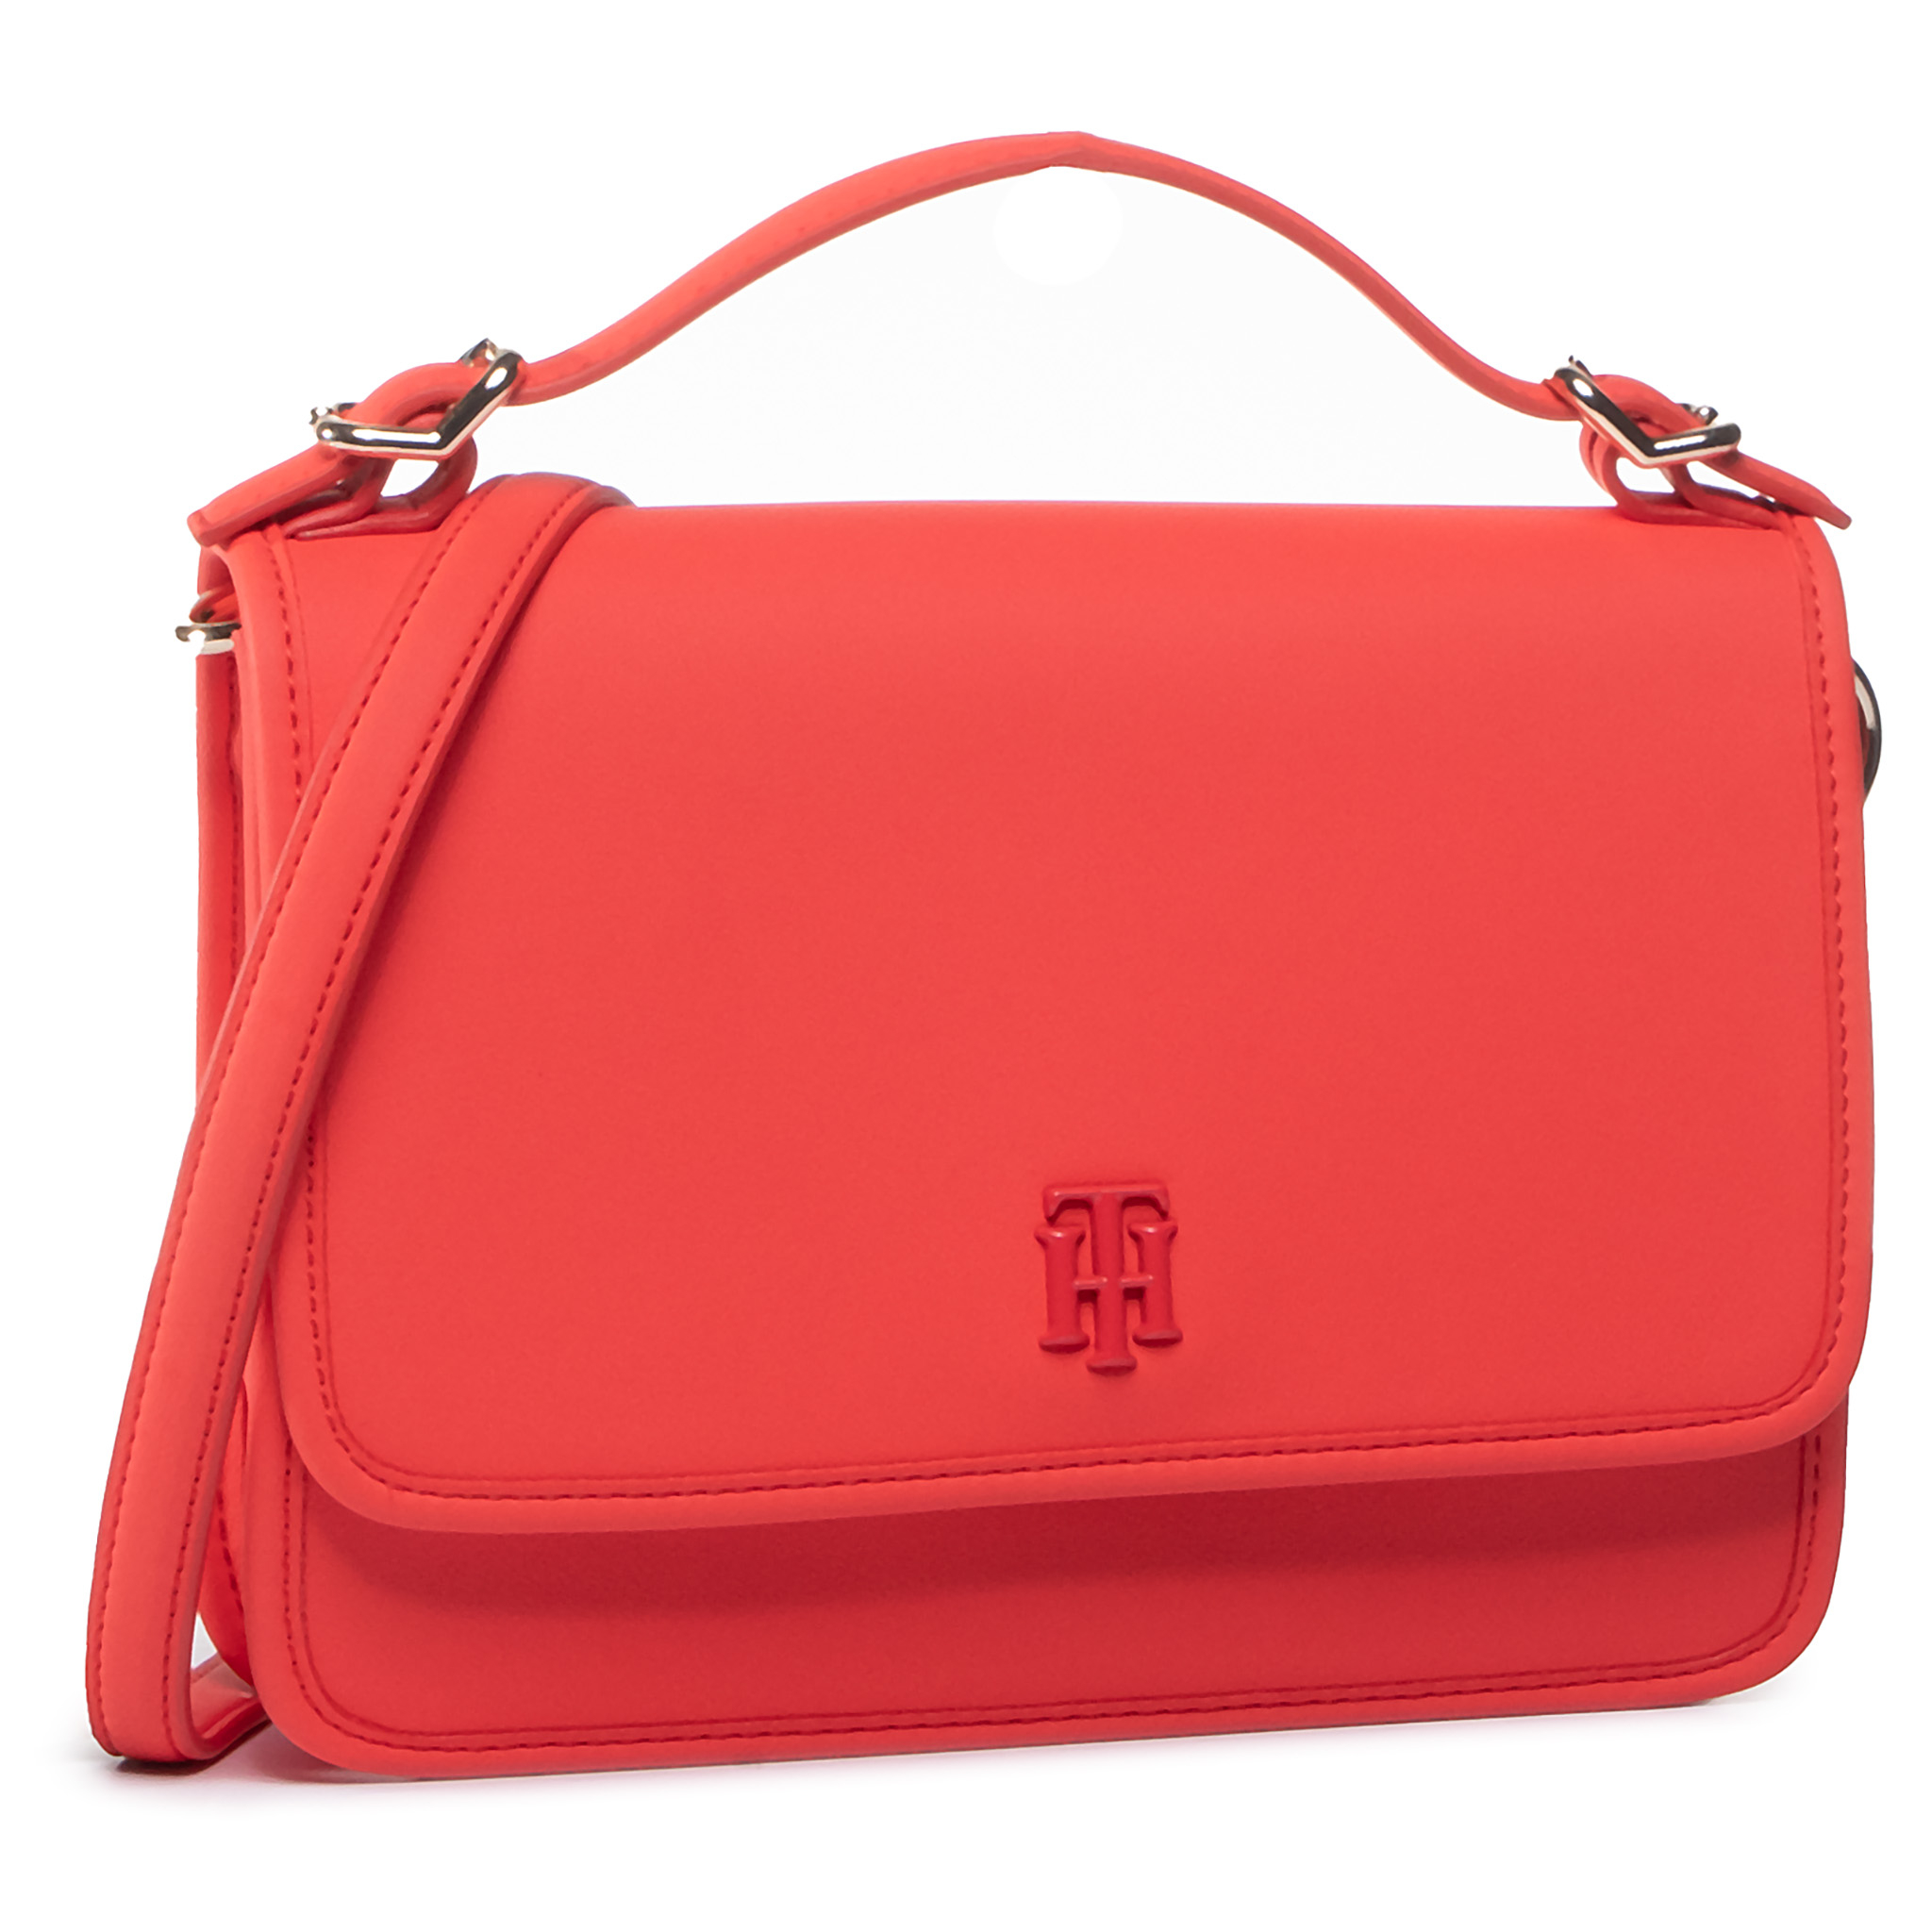 Geantă TOMMY HILFIGER - Chic Crossover AW0AW07983 Org SN6